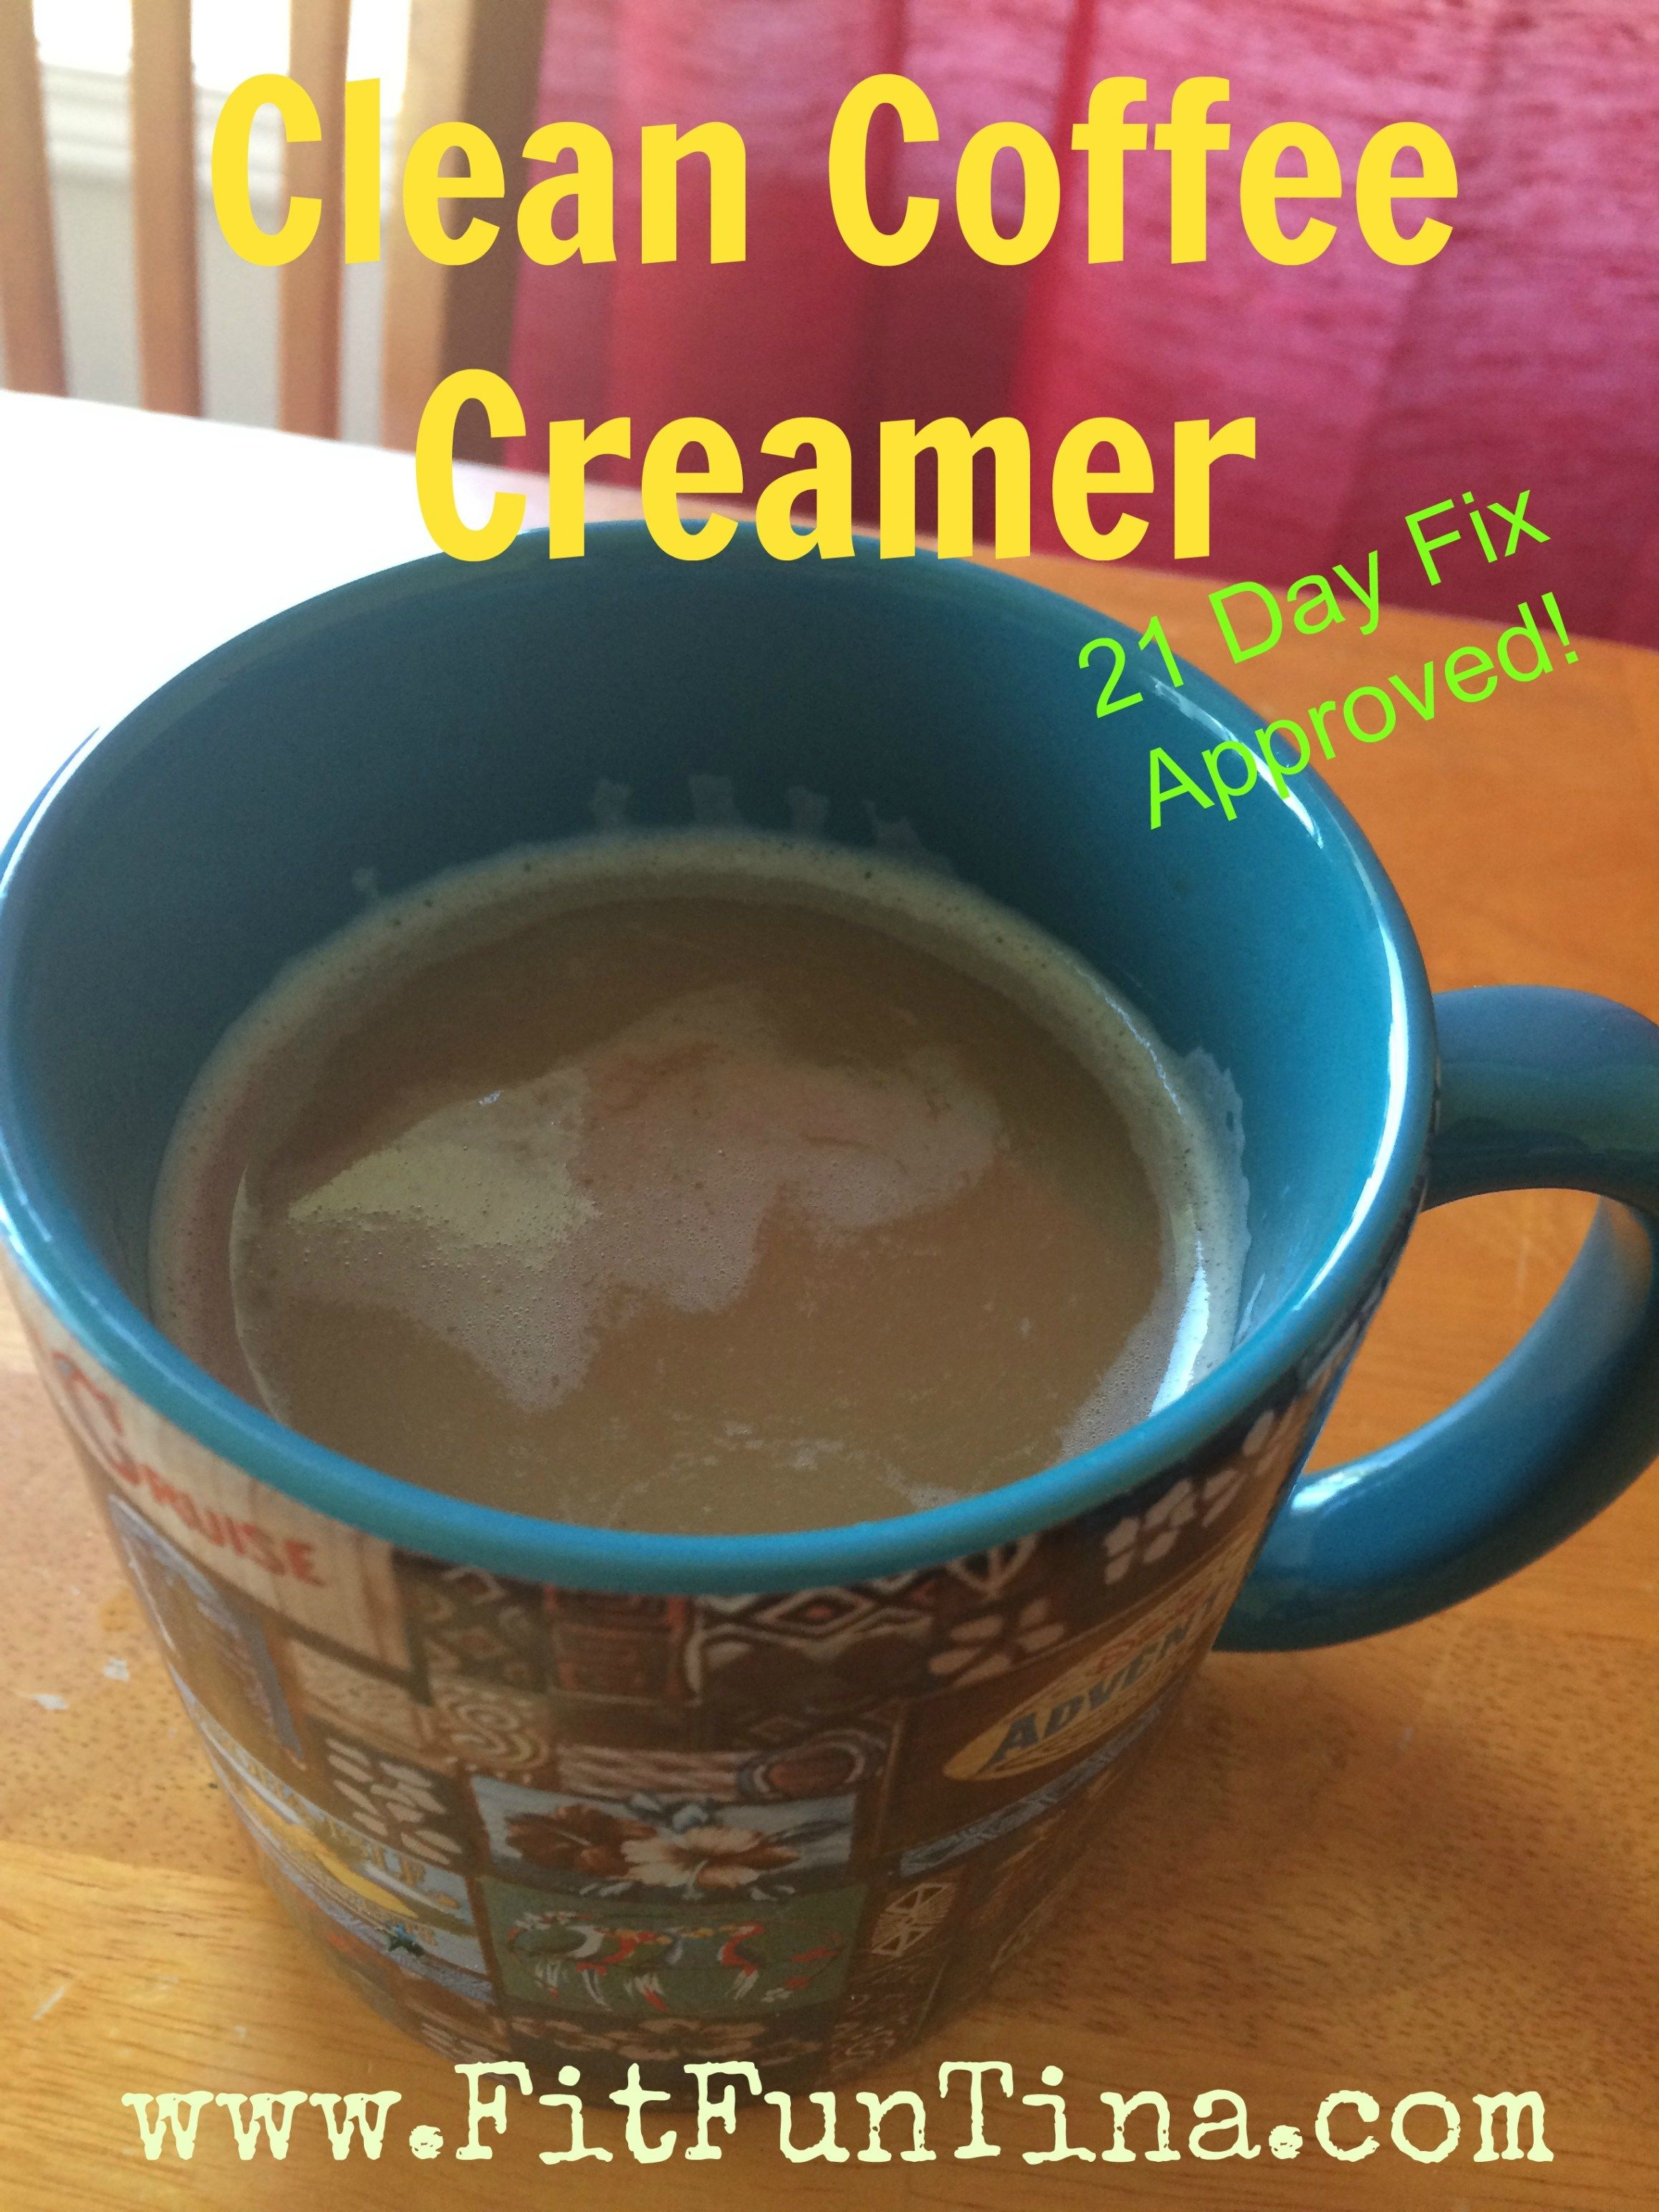 Clean coffee creamer 21 day fix approved clean coffee